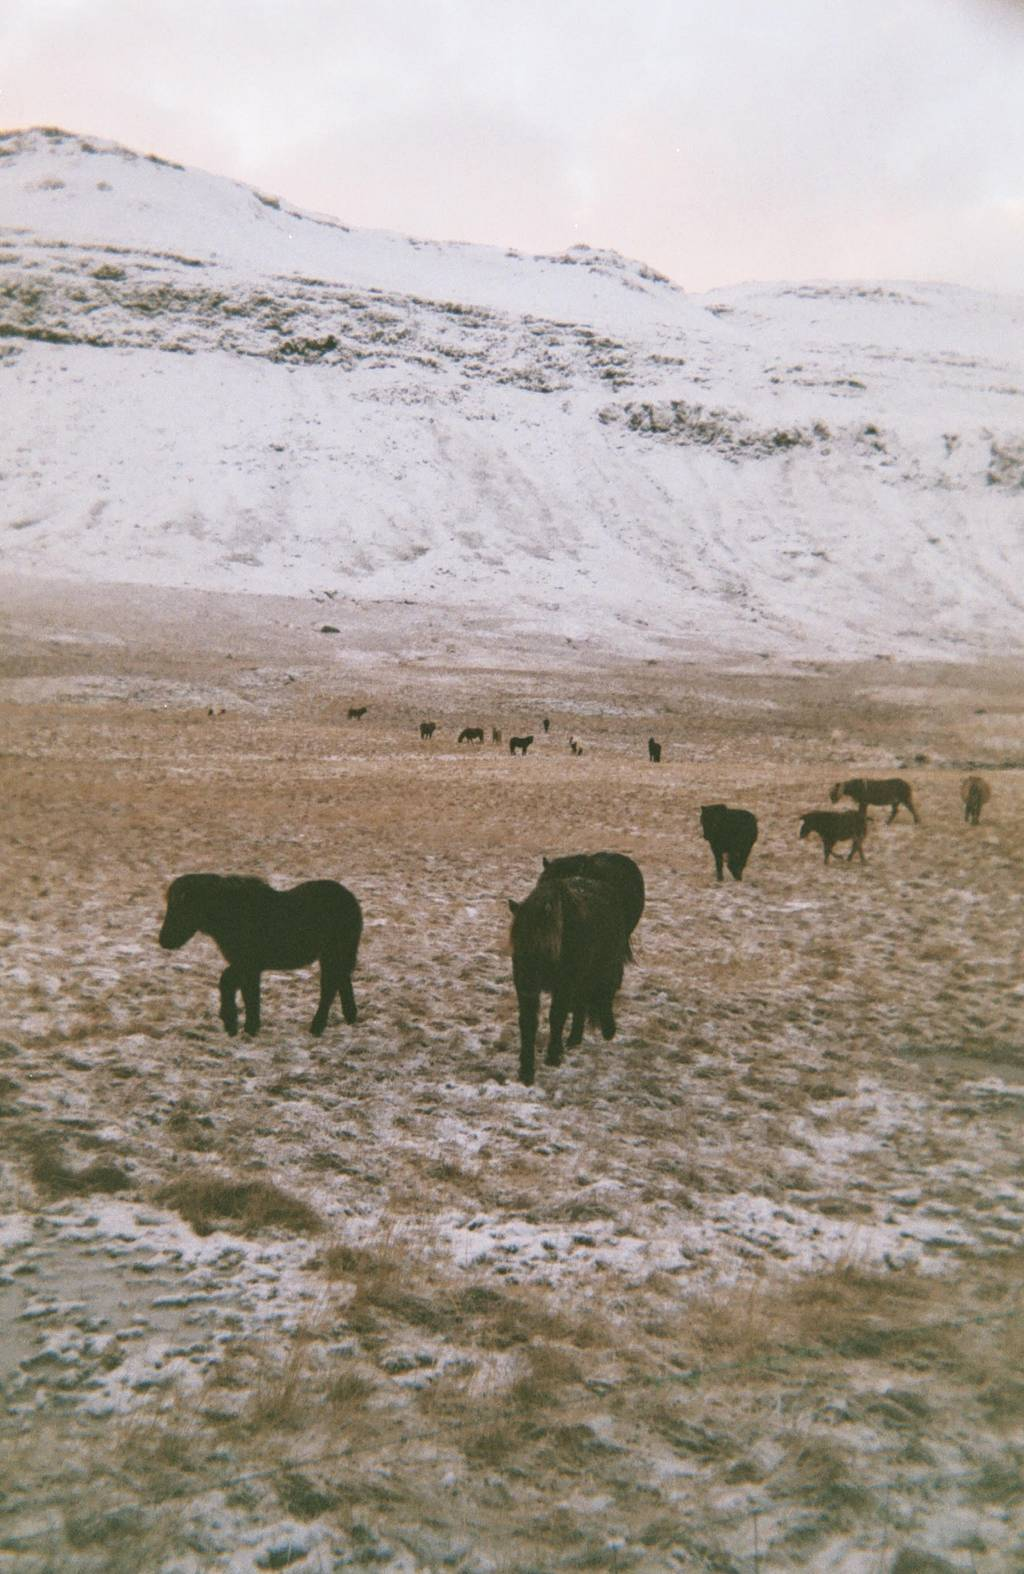 Iceland Landscapes Taken with Lomography Films by Nicoló Strano aka Wume